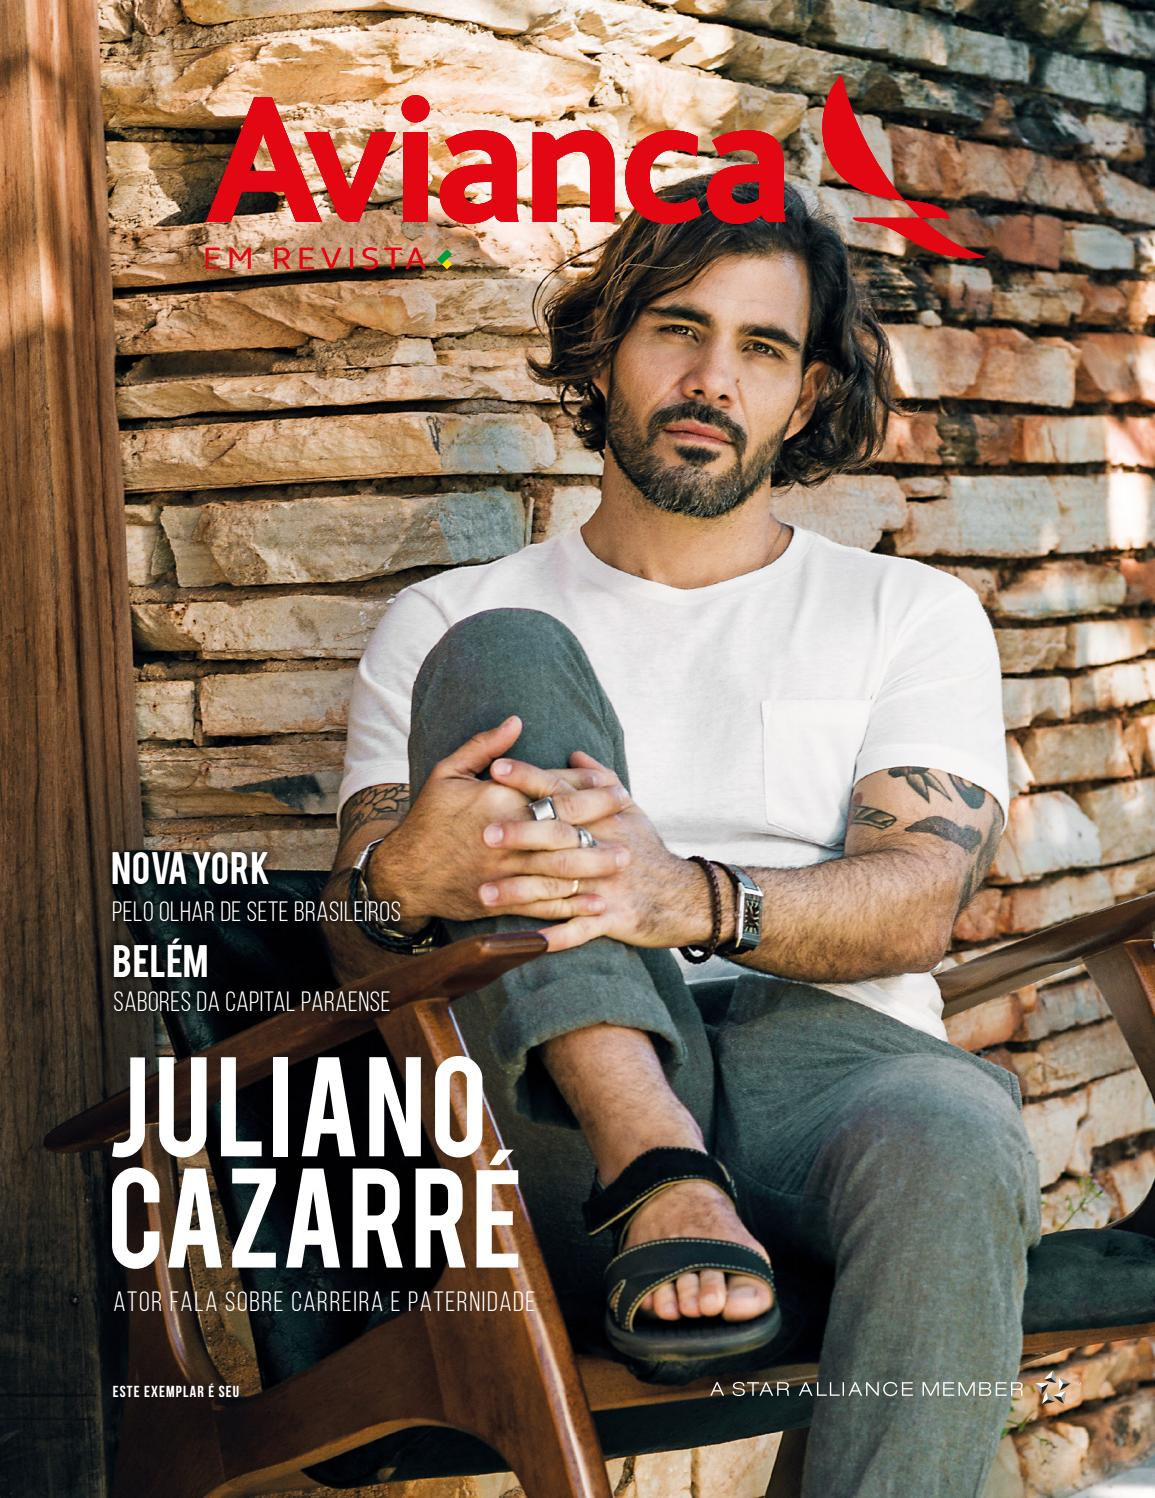 97 Juliano Cazarré by Media Onboard - issuu 7cf80d1e9c2f2